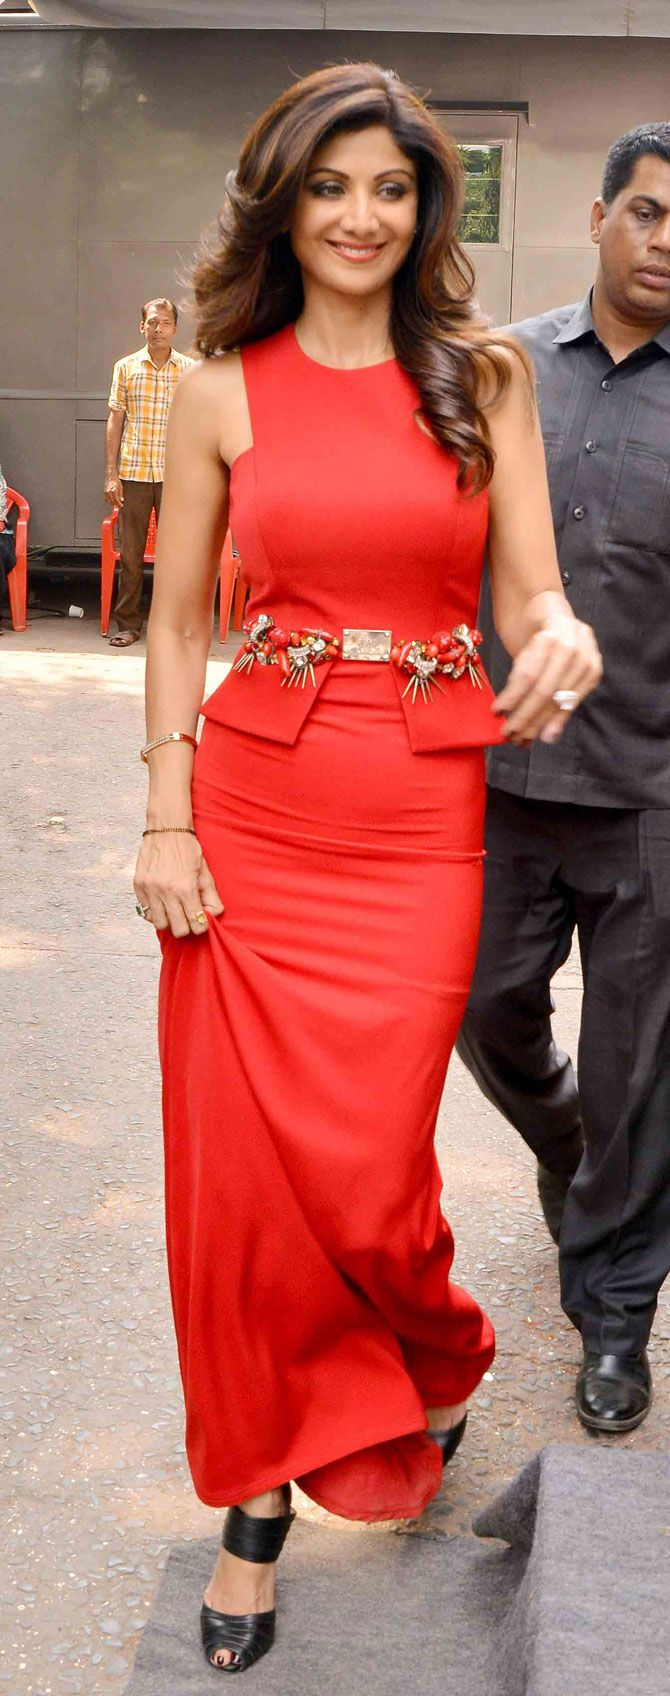 Shilpa Shetty in a red hot dress. #Bollywood #Fashion #Style #Beauty #Hot